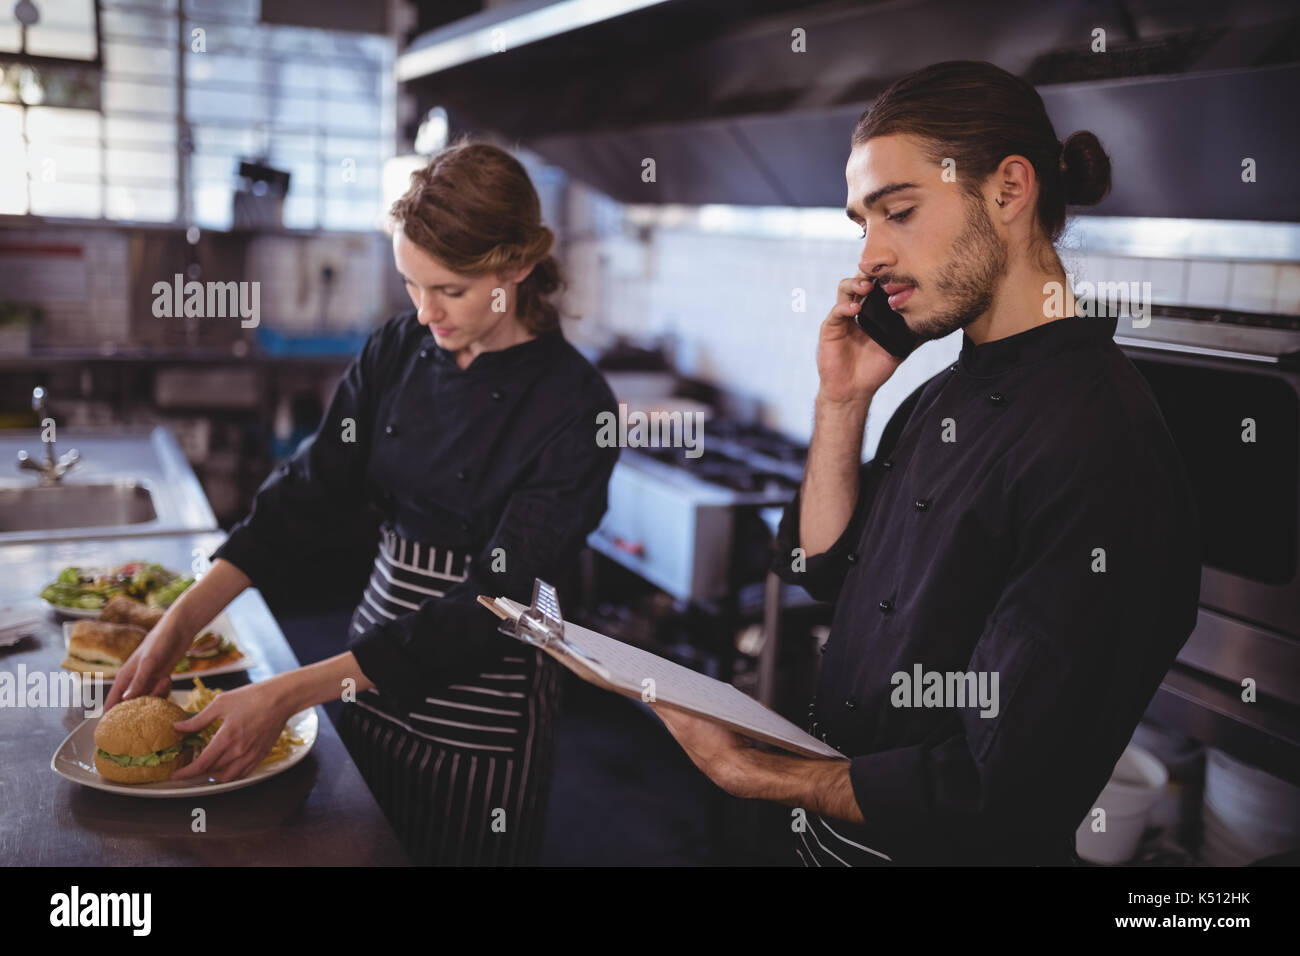 Young waiter talking on smartphone while waitress preparing food in commercial kitchen at coffee shop - Stock Image